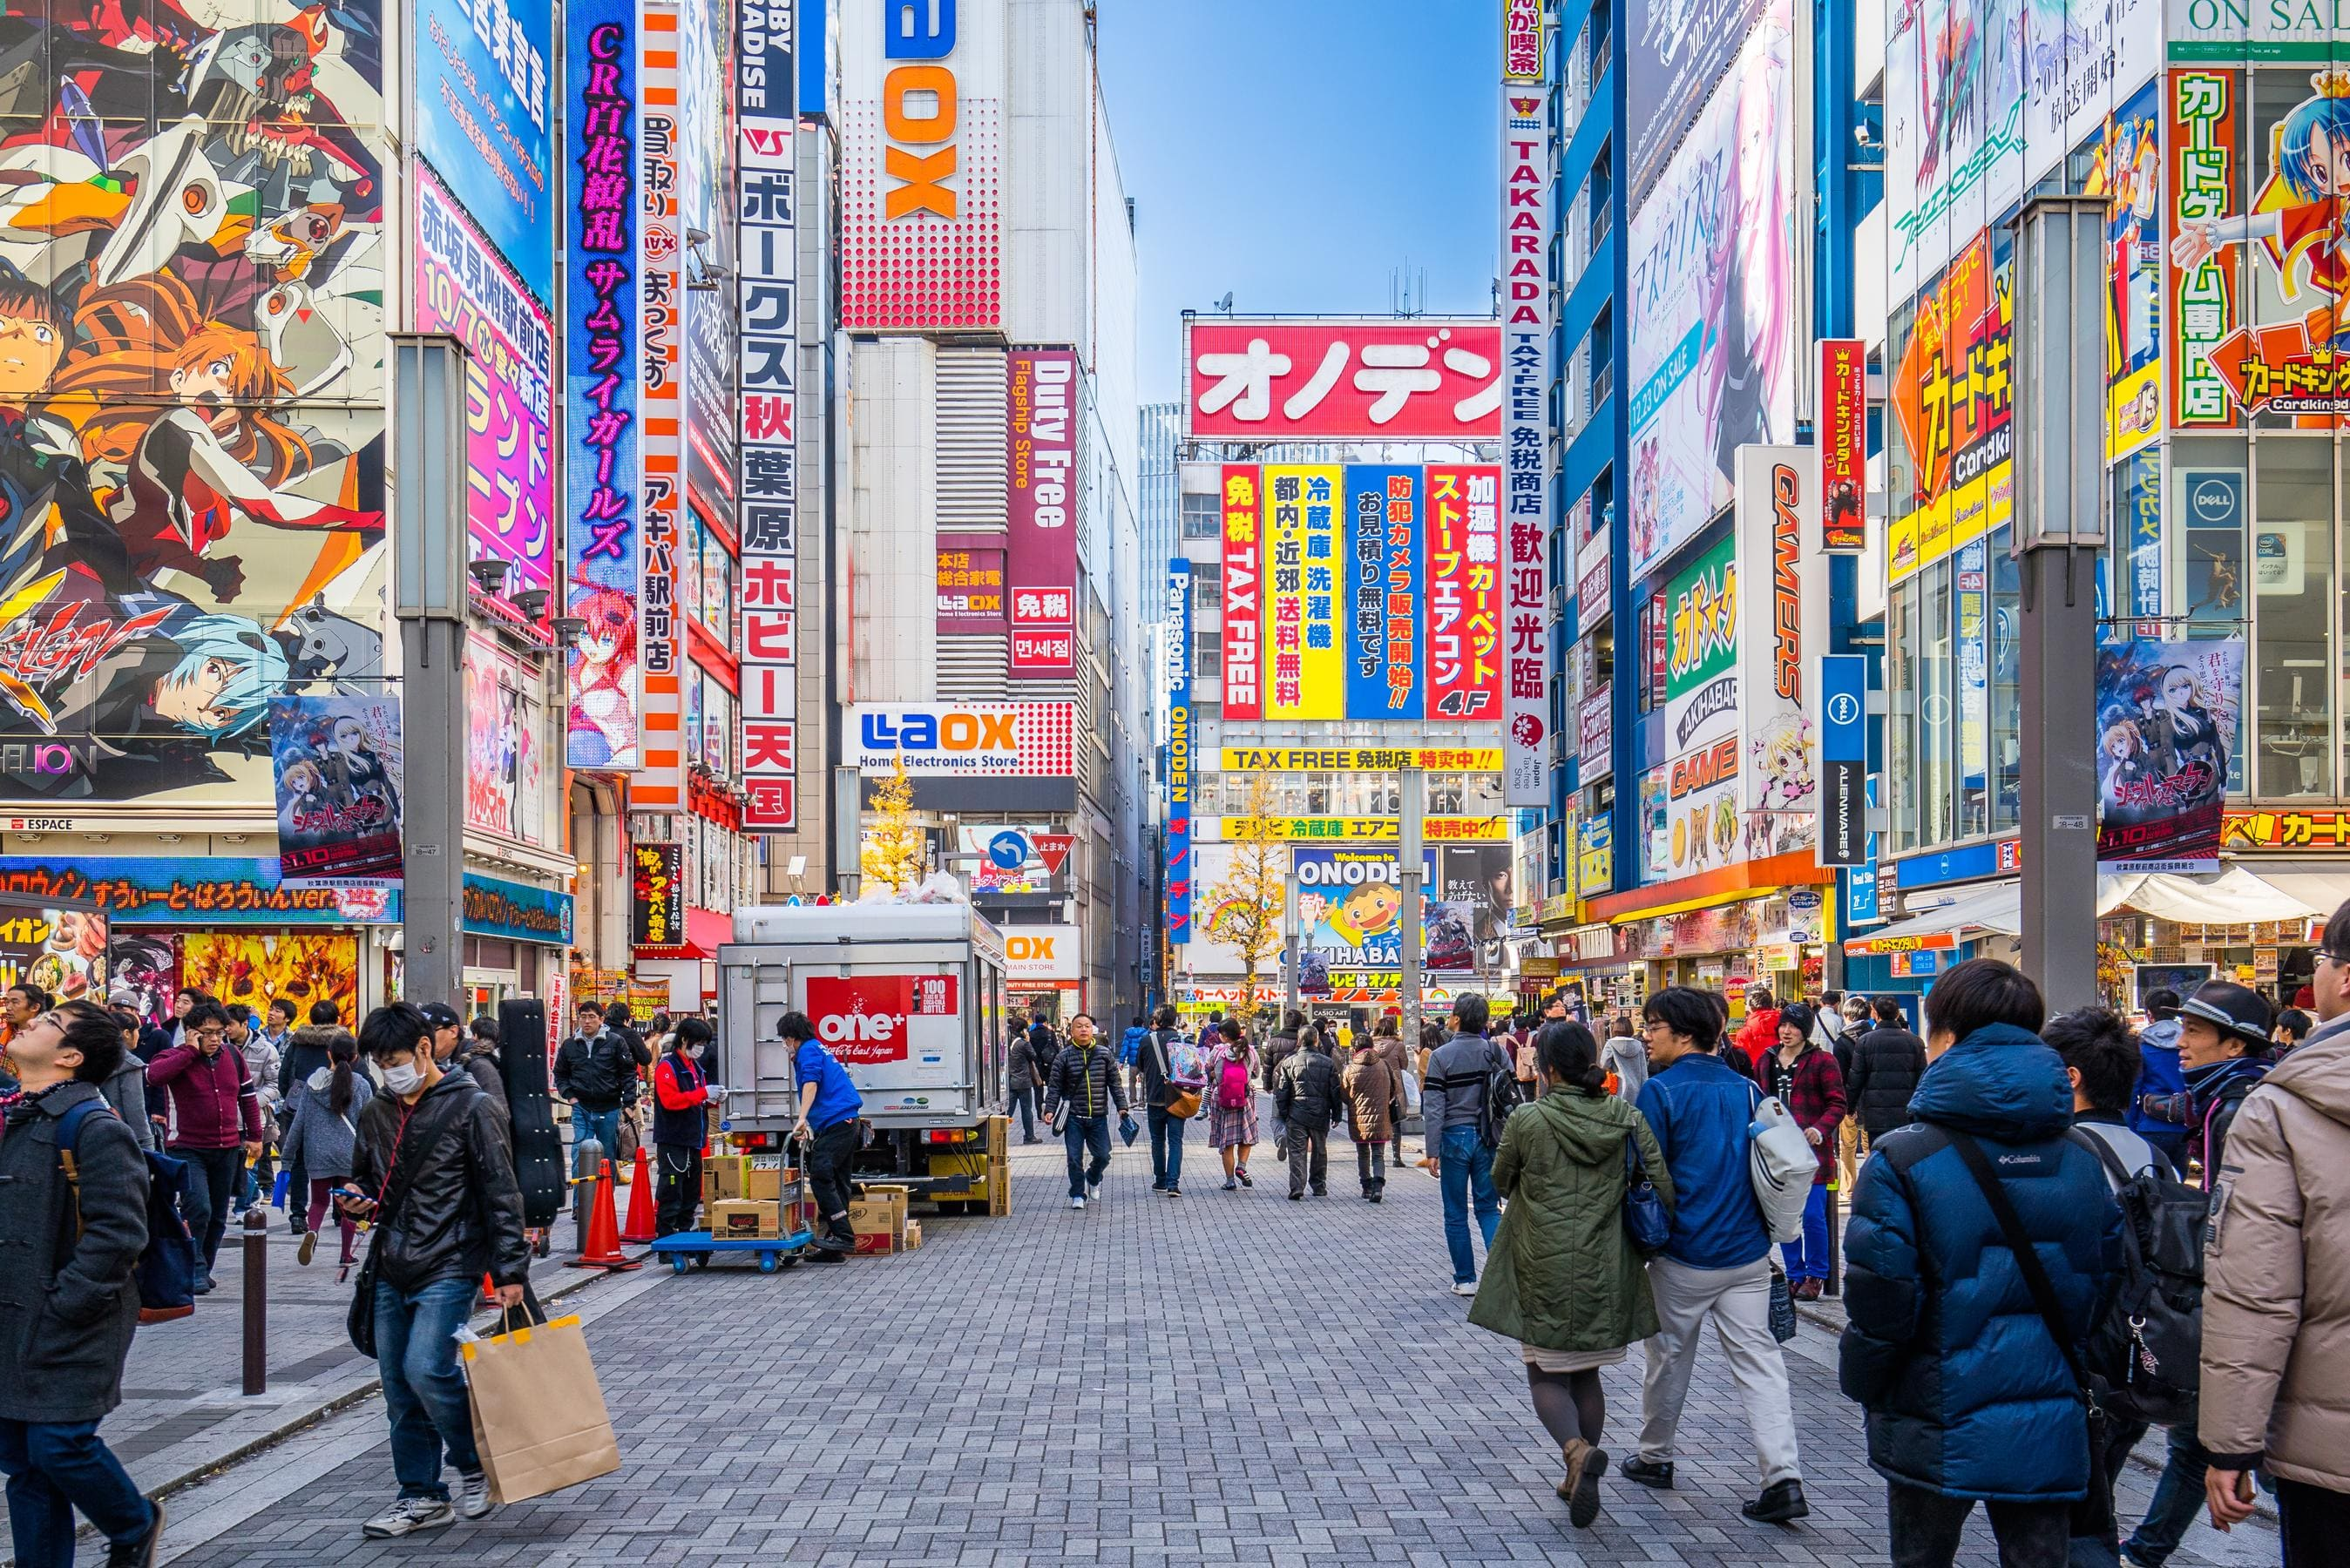 How To Find A Free Tour Guide In Japan